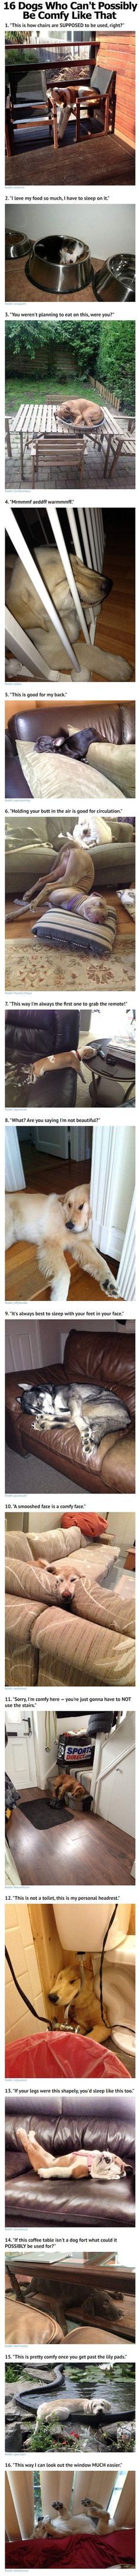 16 Dogs Who Can't Possibly Be Comfy Like That cute animals dogs adorable dog puppy animal pets funny animals funny pets funny dogs